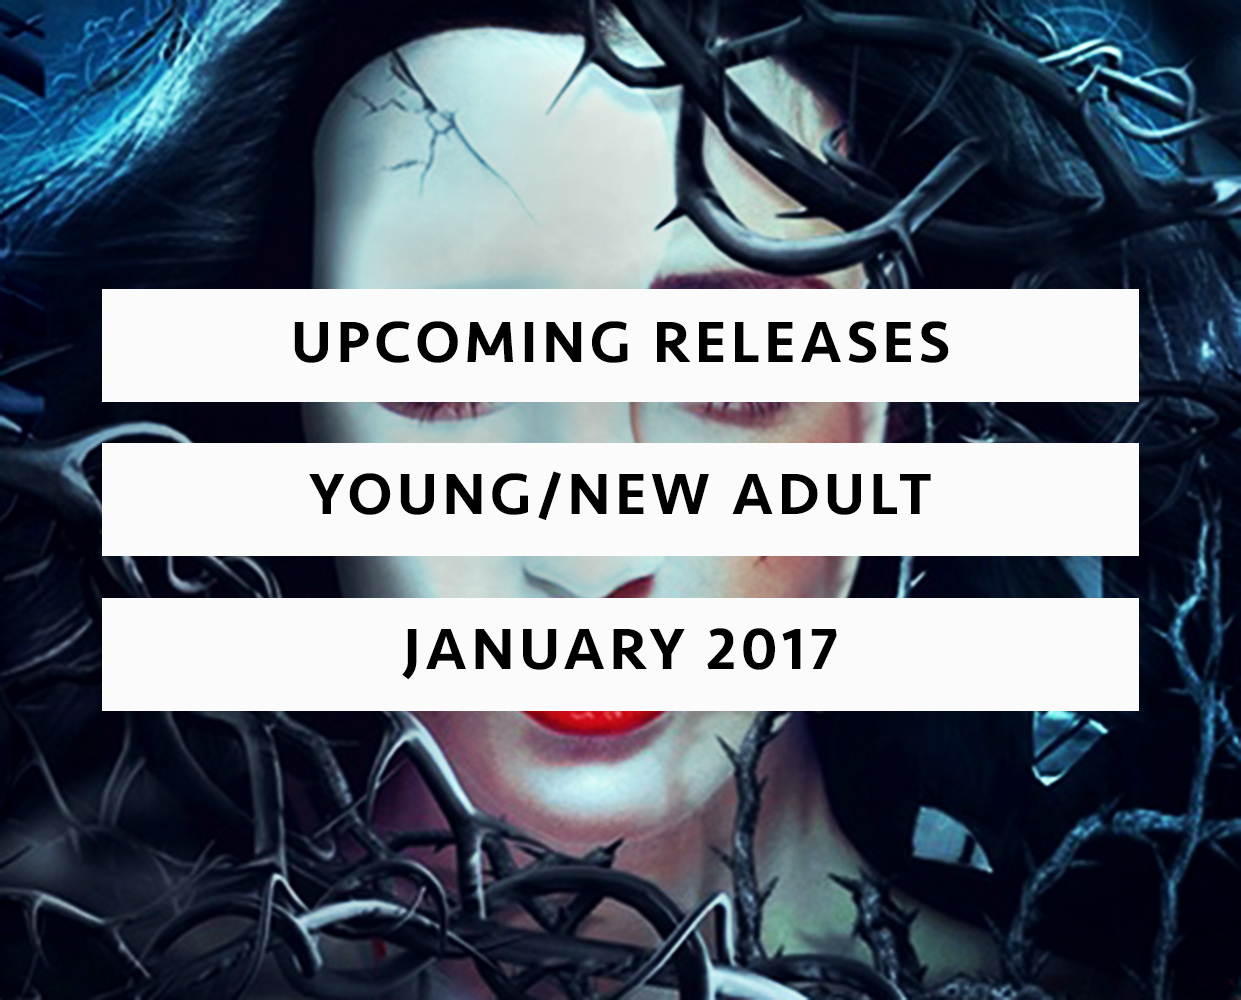 upcoming releases january 2017